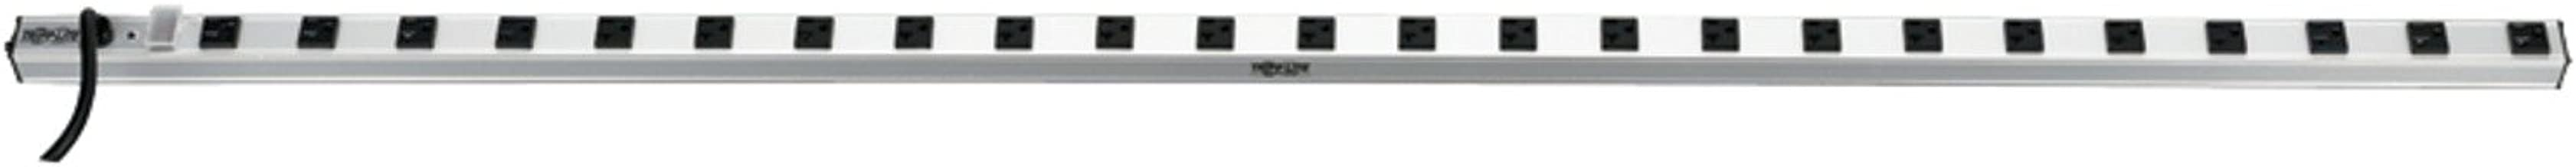 Tripp Lite 24 Outlet Bench & Cabinet Power Strip, 72 in. Length, 15ft Cord with 5-15P Plug, (PS7224)